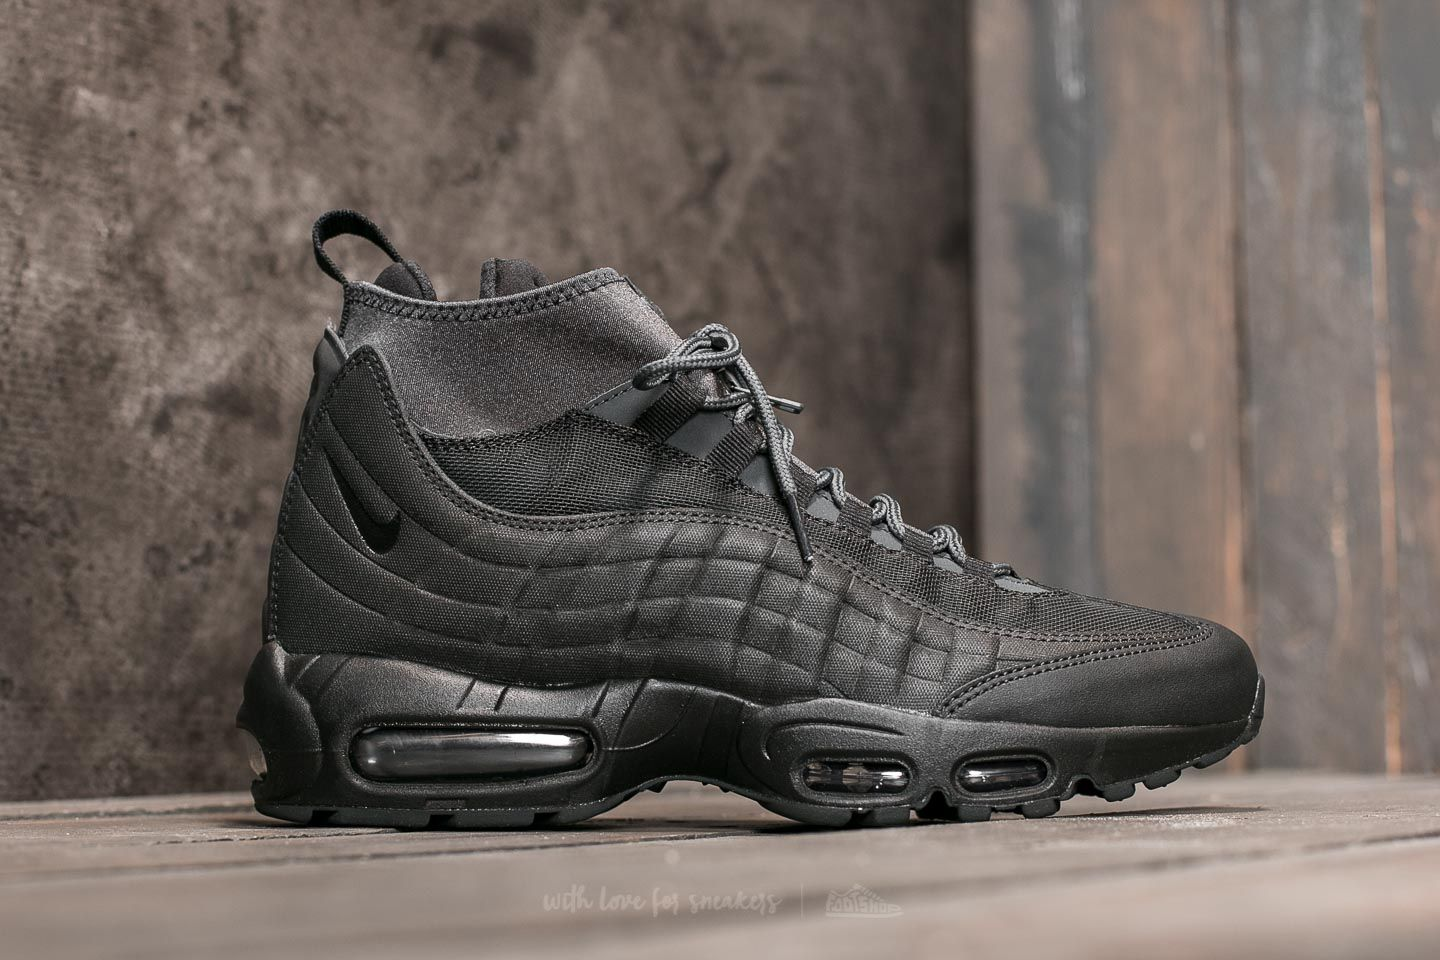 hot sale online f393b 4ea89 Nike Air Max 95 Sneakerboot Black  Black-Anthracite-White at a great price